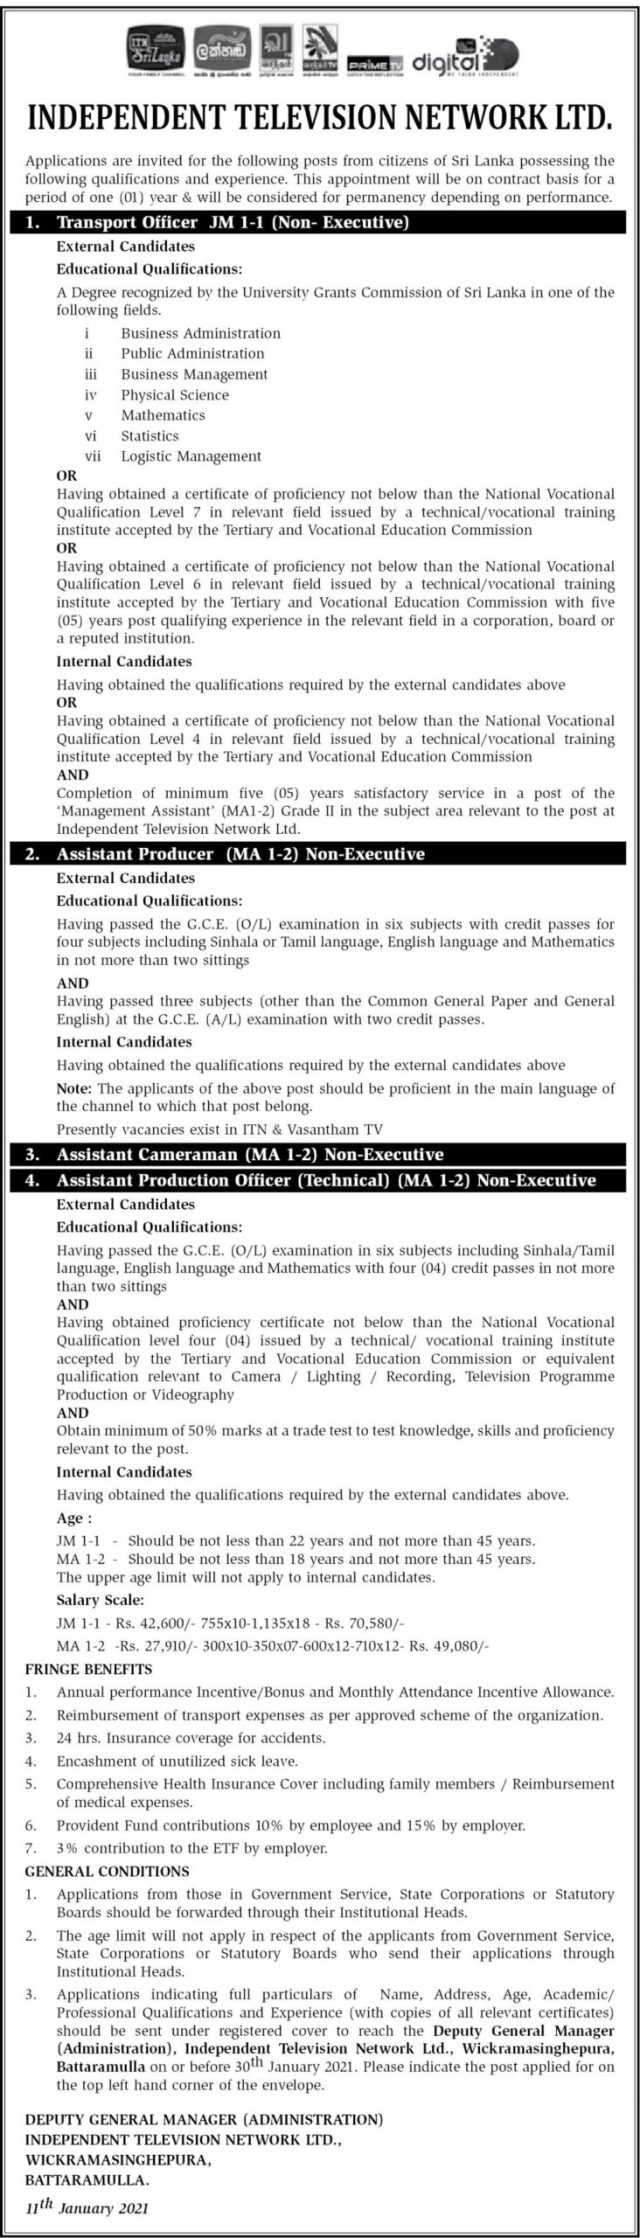 Transport Officer, Assistant Producer, Assistant Cameraman, Assistant Production Officer (Technical)